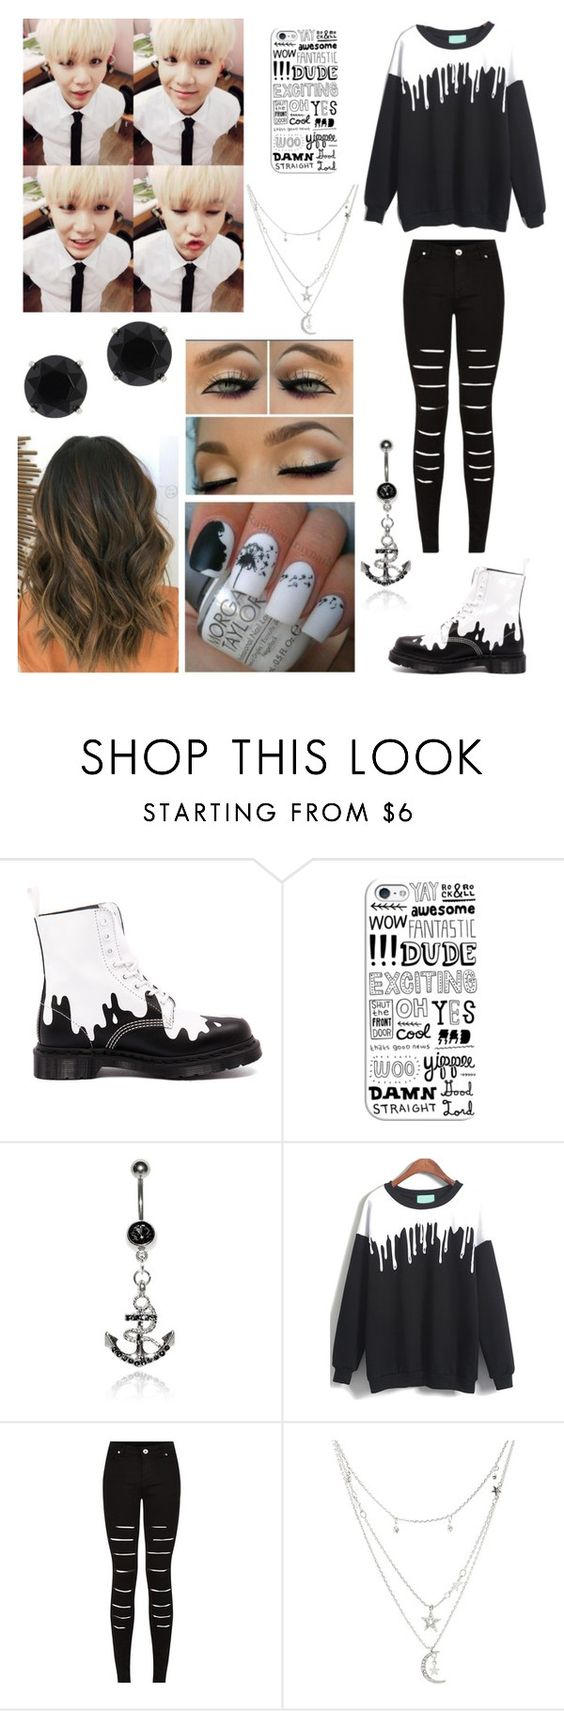 """""""Hangin with Suga"""" by cmarnoldrr ❤ liked on Polyvore featuring Dr. Martens, Katie May, Casetify, Charlotte Russe and Anne Klein"""